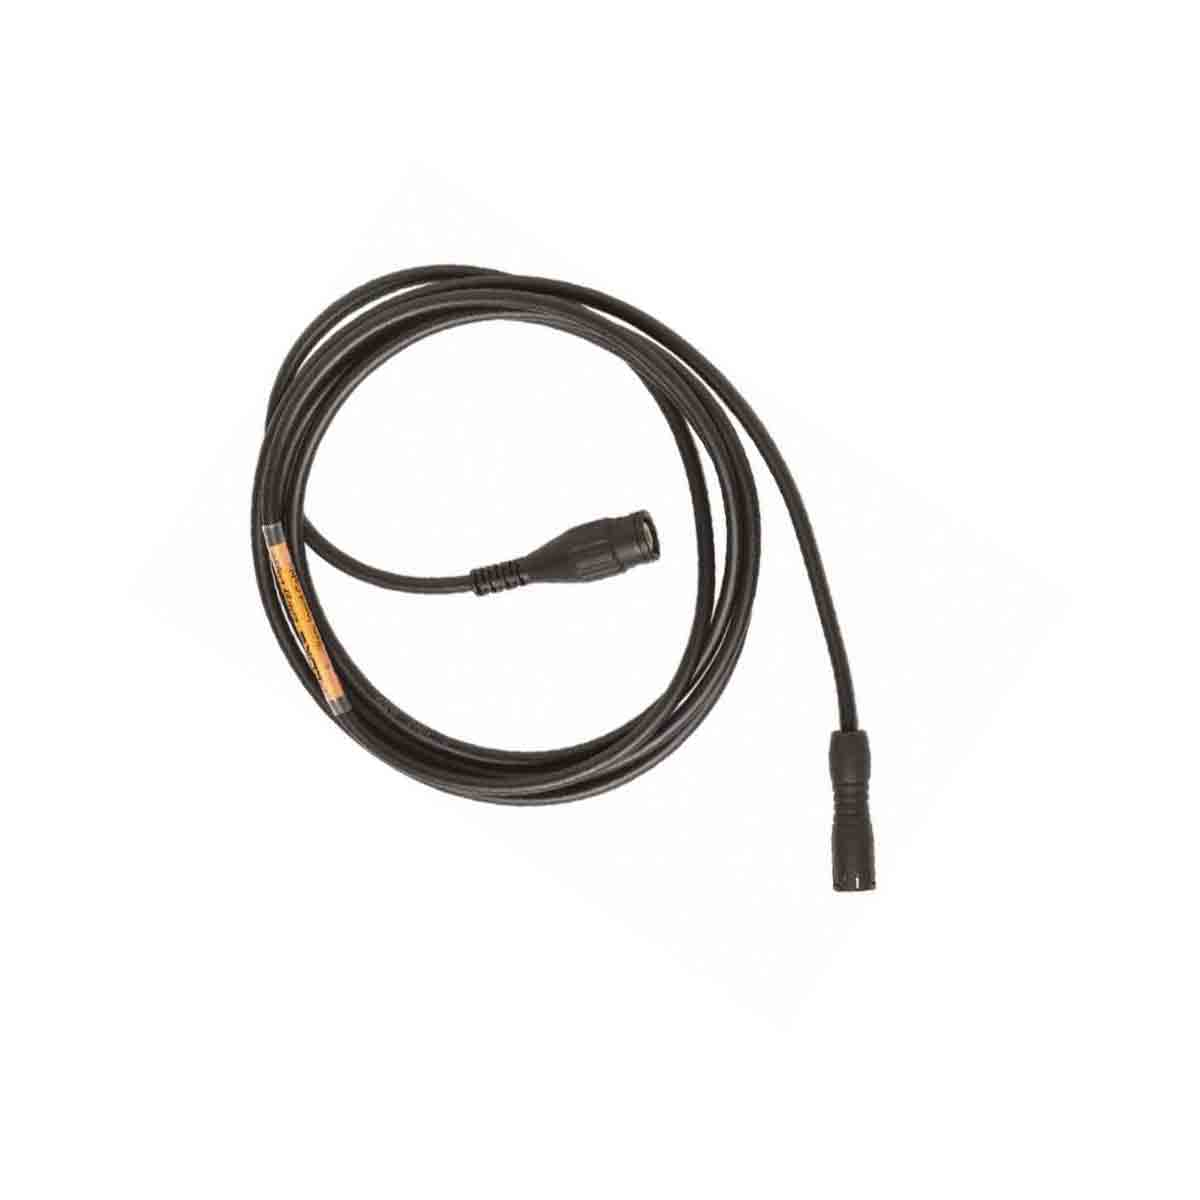 1730 Energy Logger Auxilliary Input Cable, 1730-CABLE, Fluke